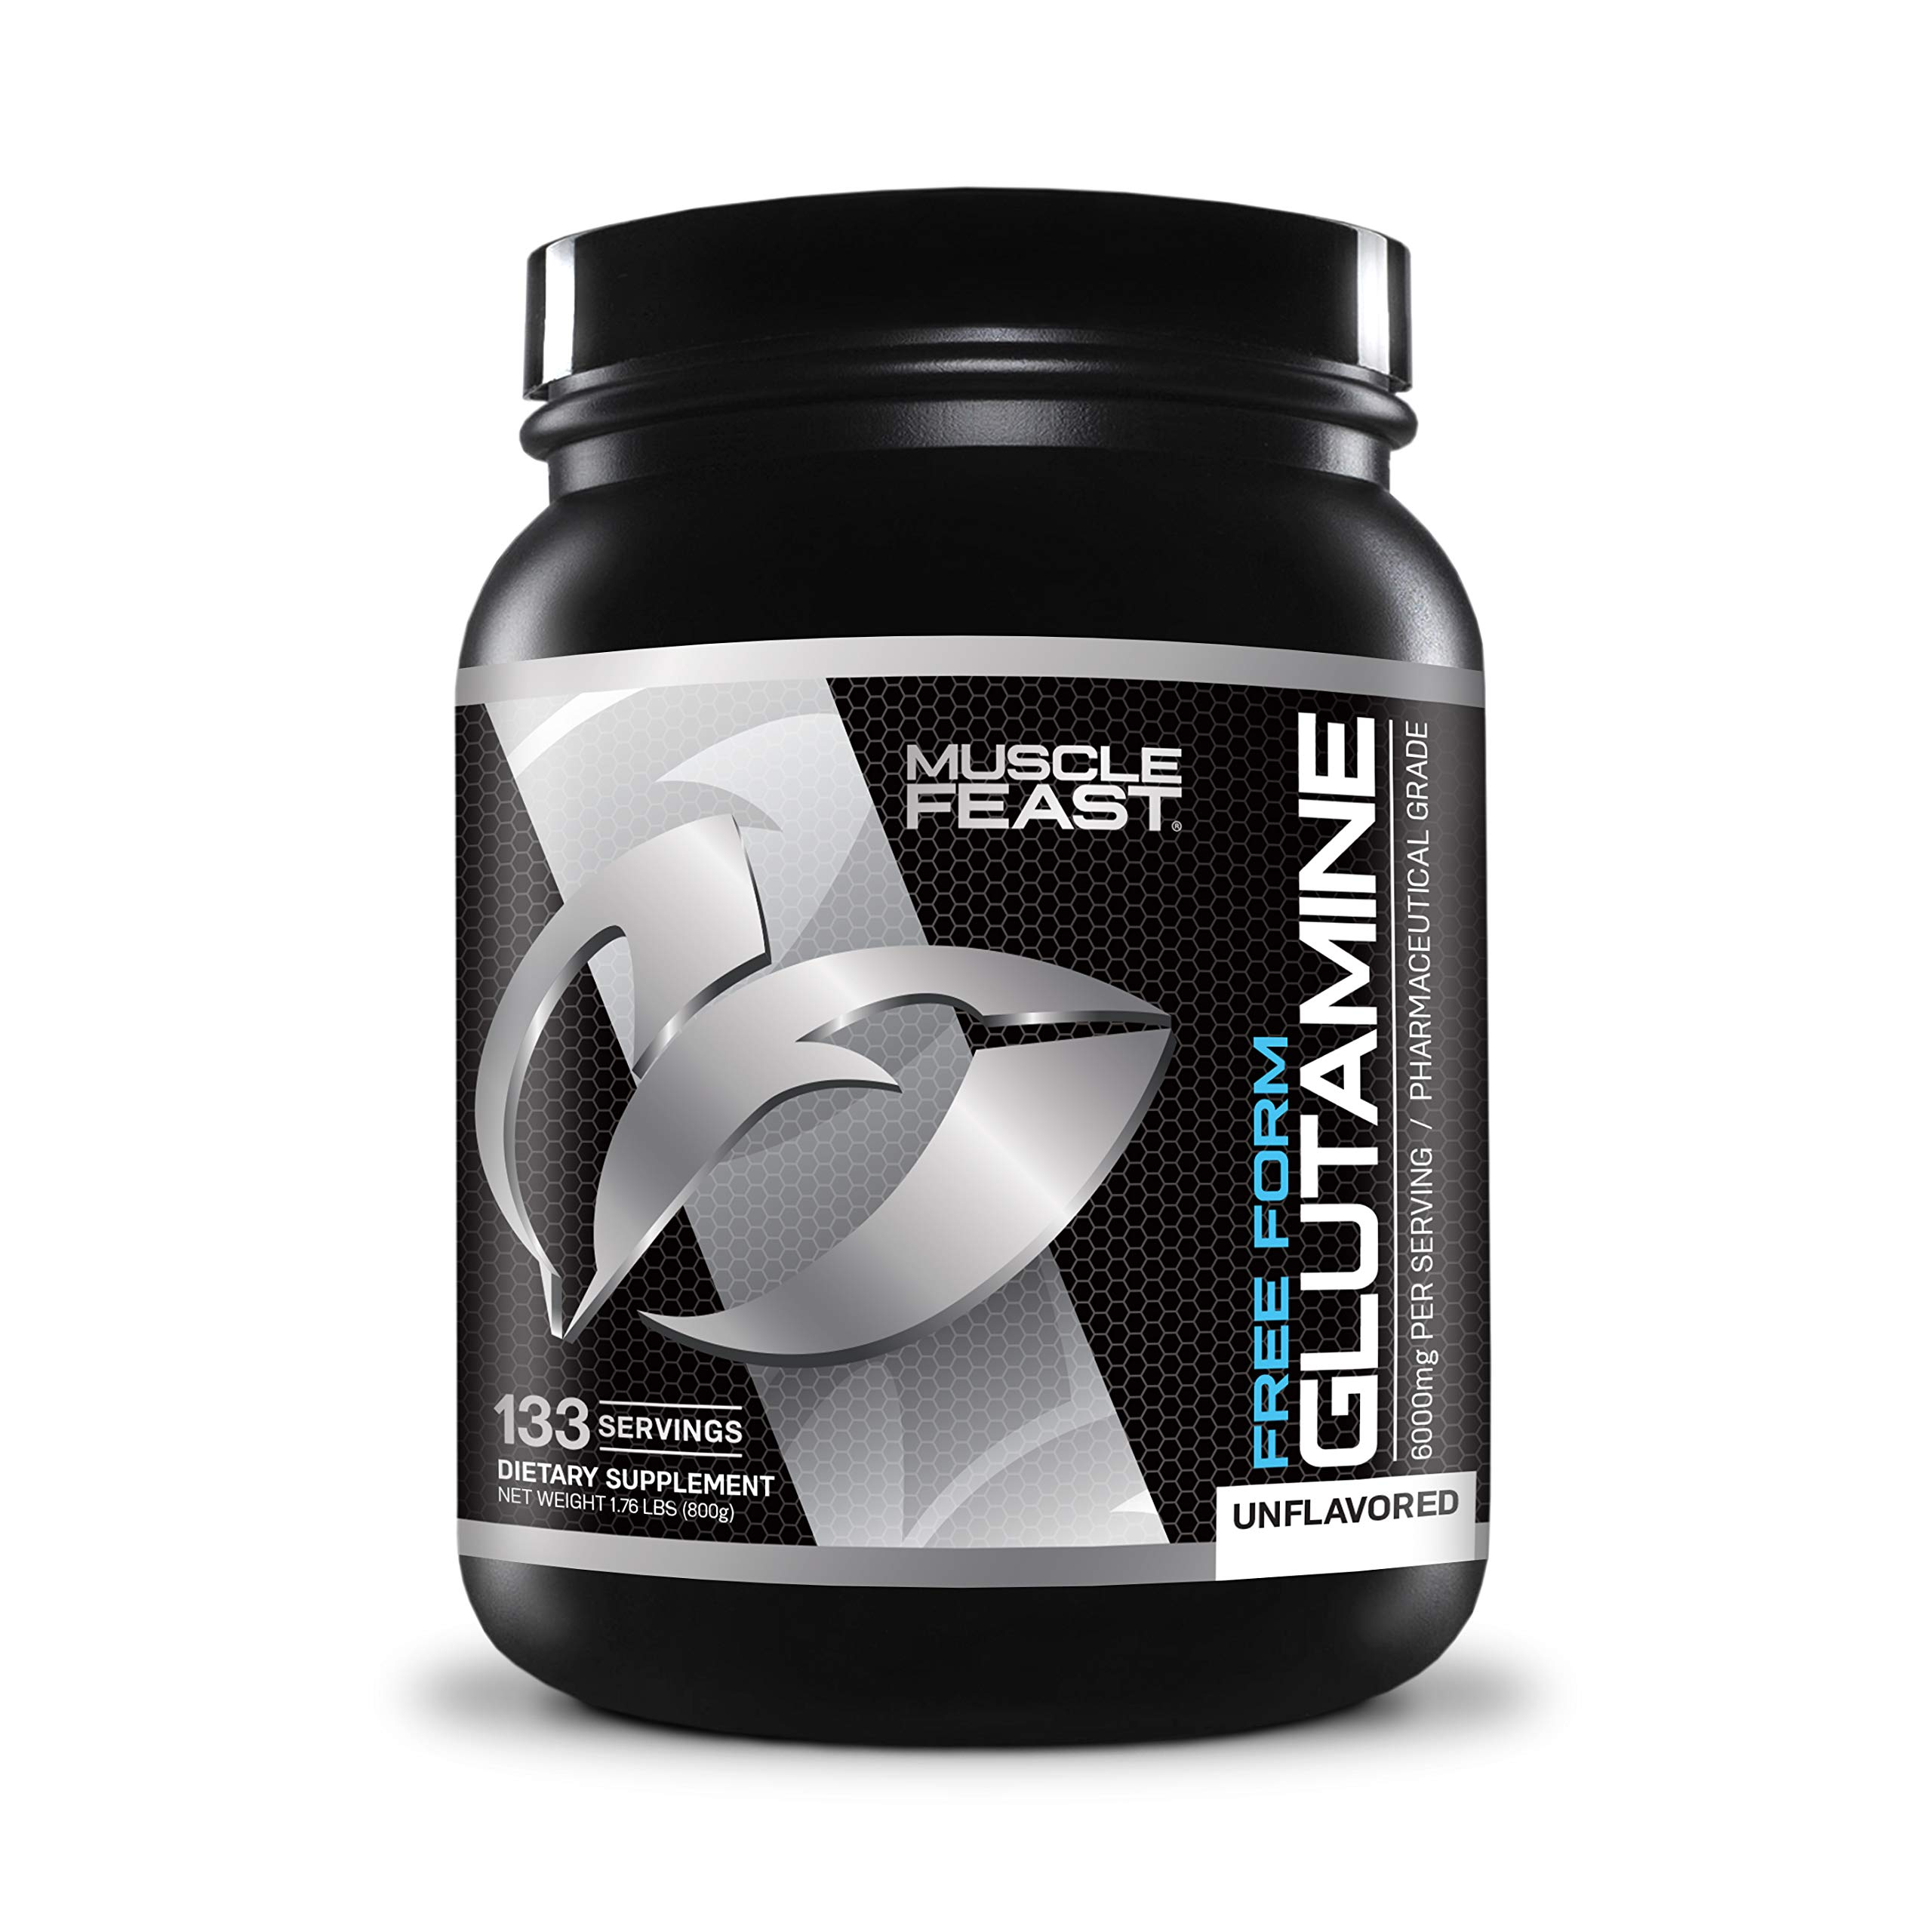 L-Glutamine Muscle Recovery Supplement - Muscle Feast - 800g Powder by Muscle Feast